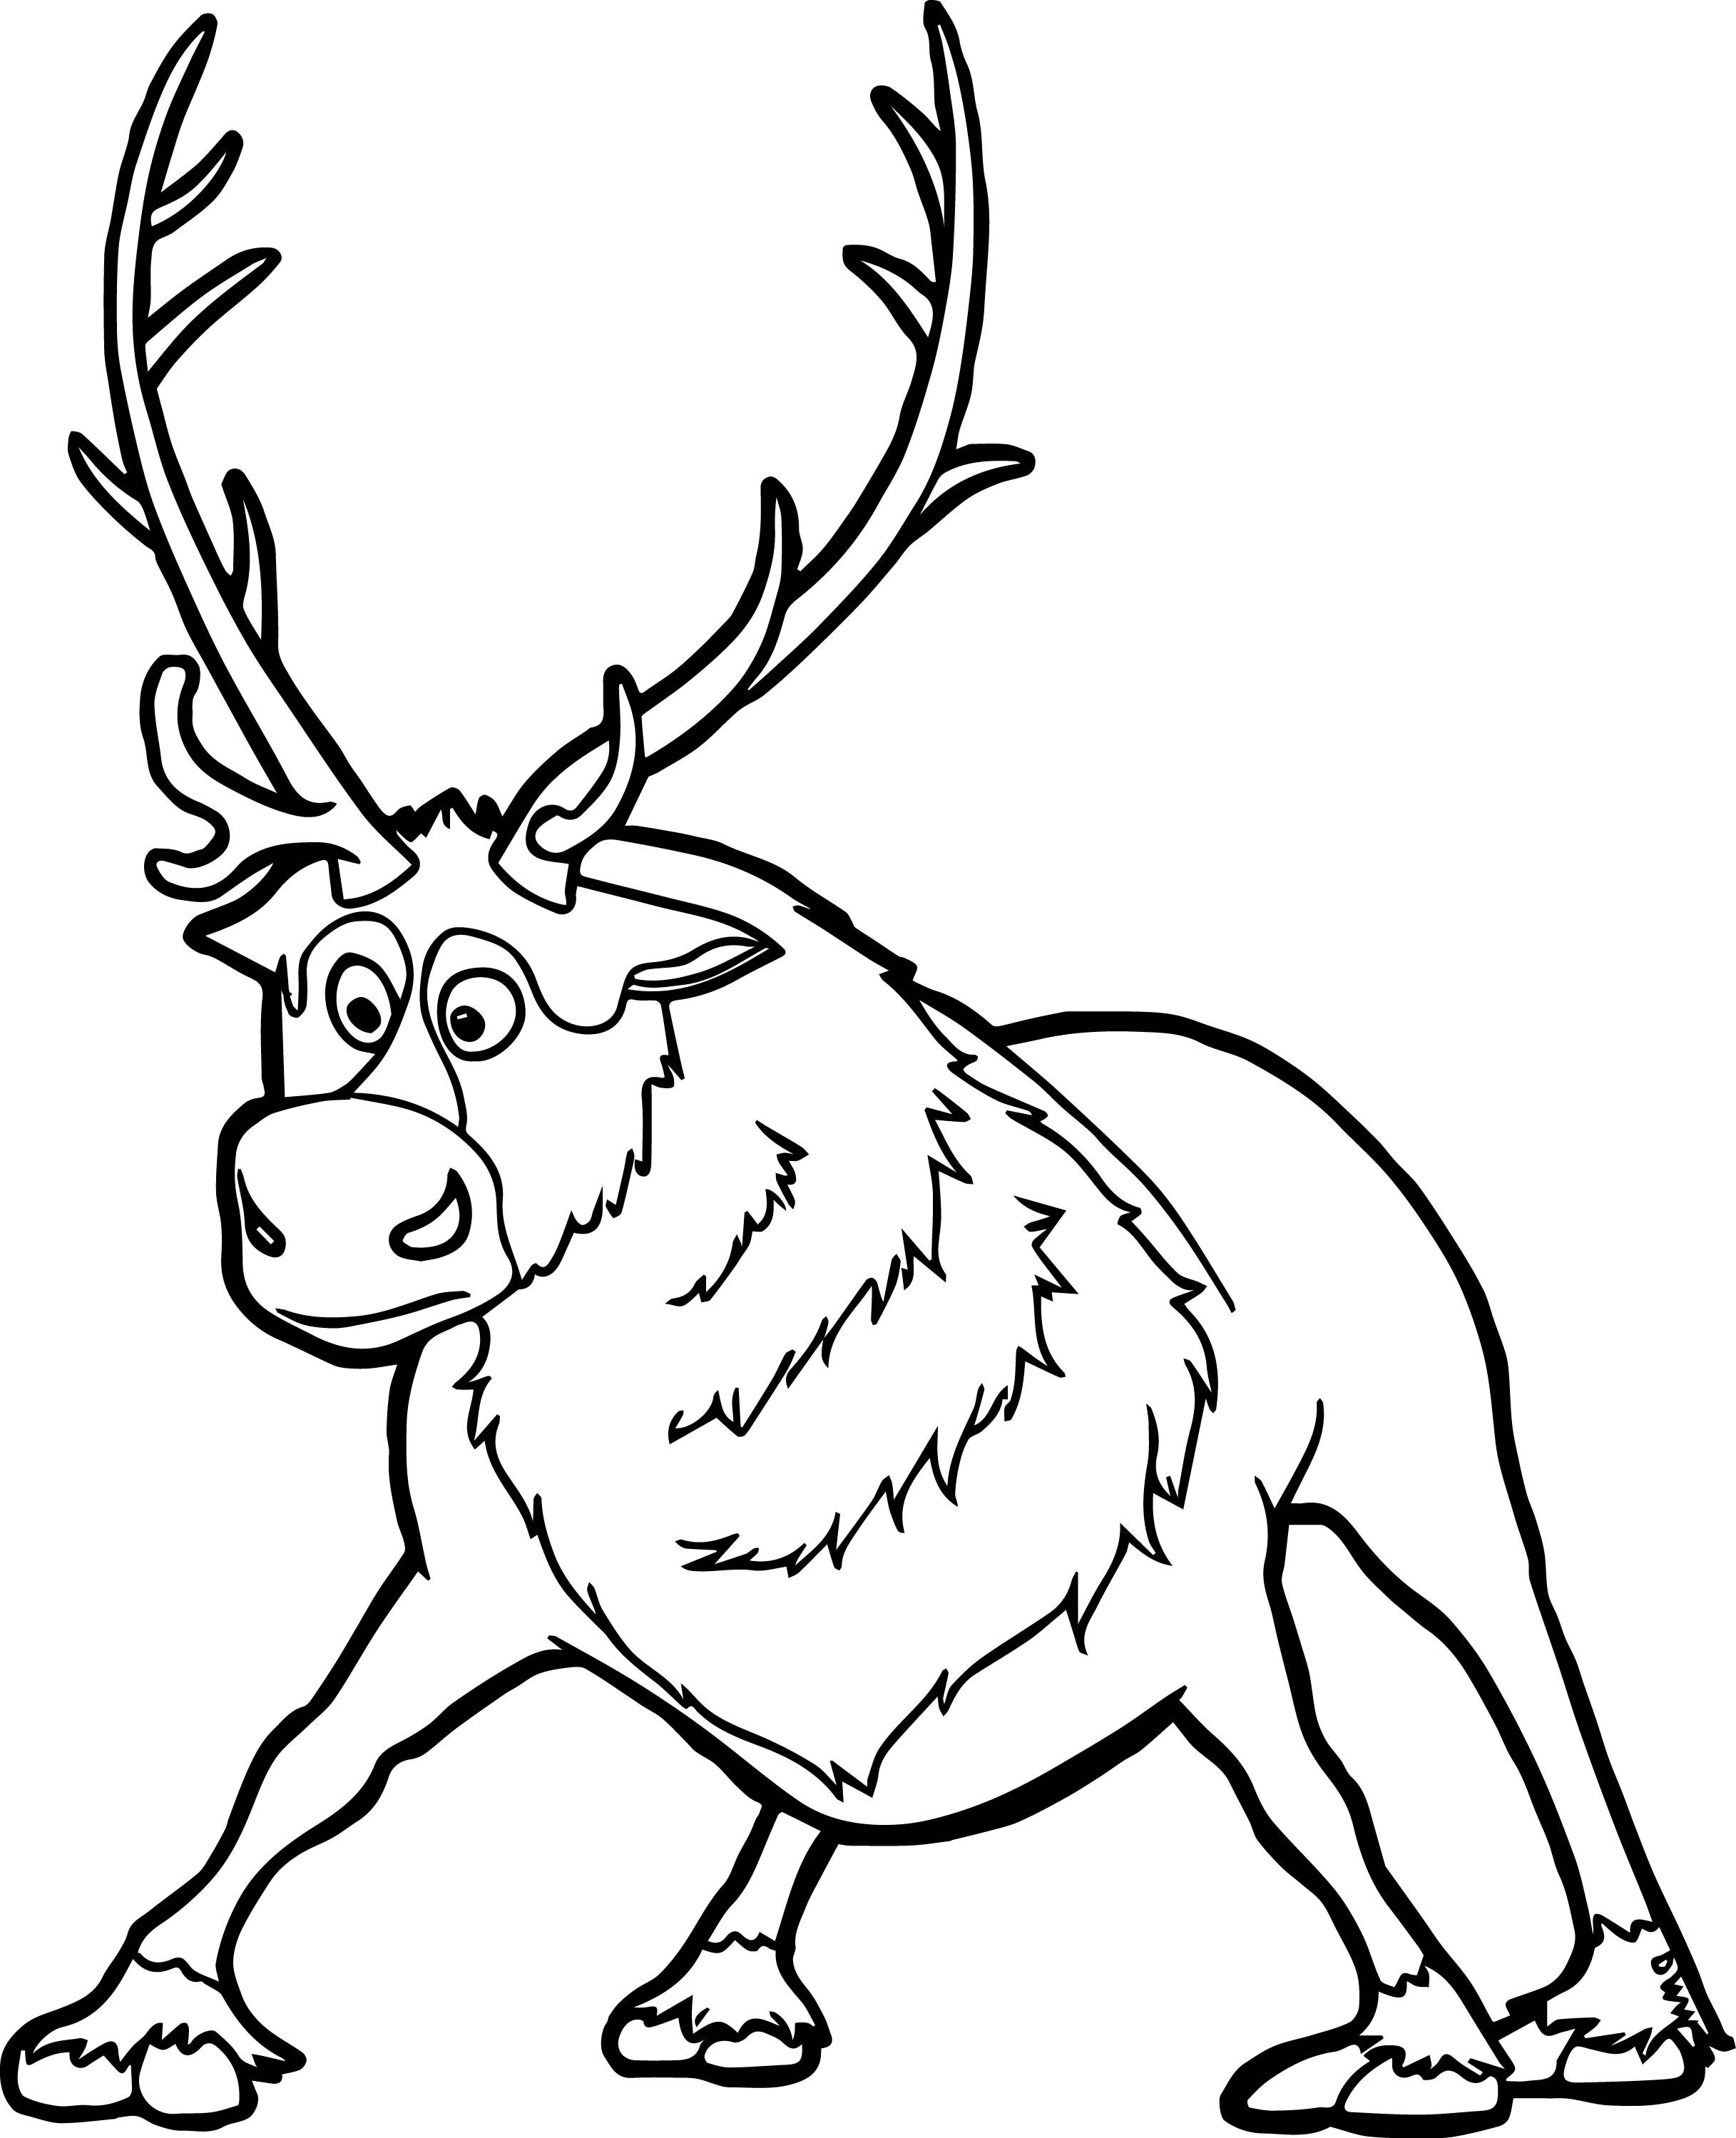 Sven Coloring Page Frozen coloring pages, Coloring pages